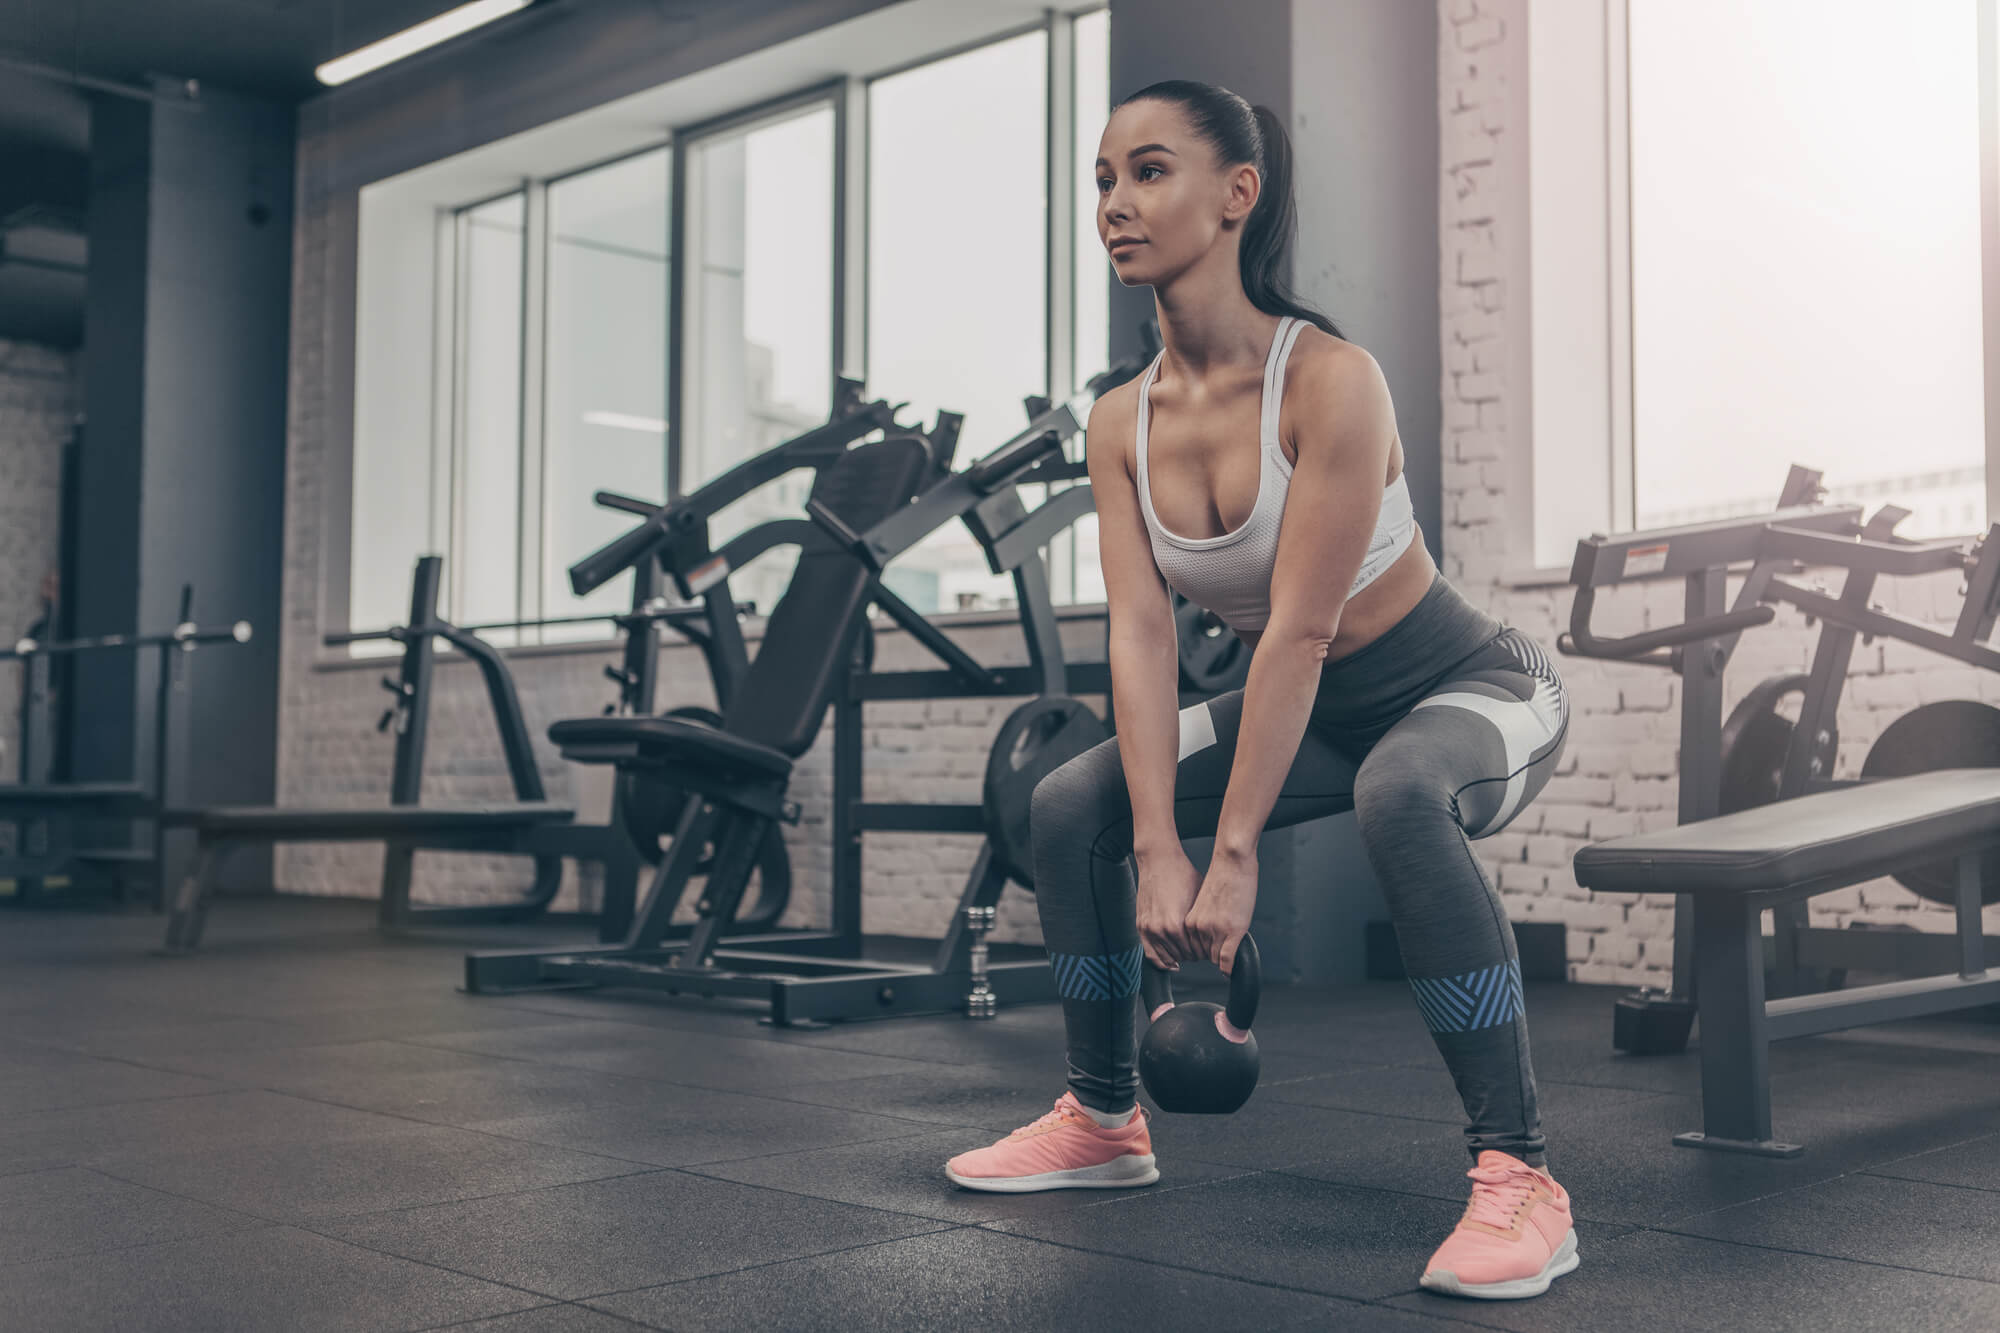 Kettlebell Squats For Immediate Leg Growth